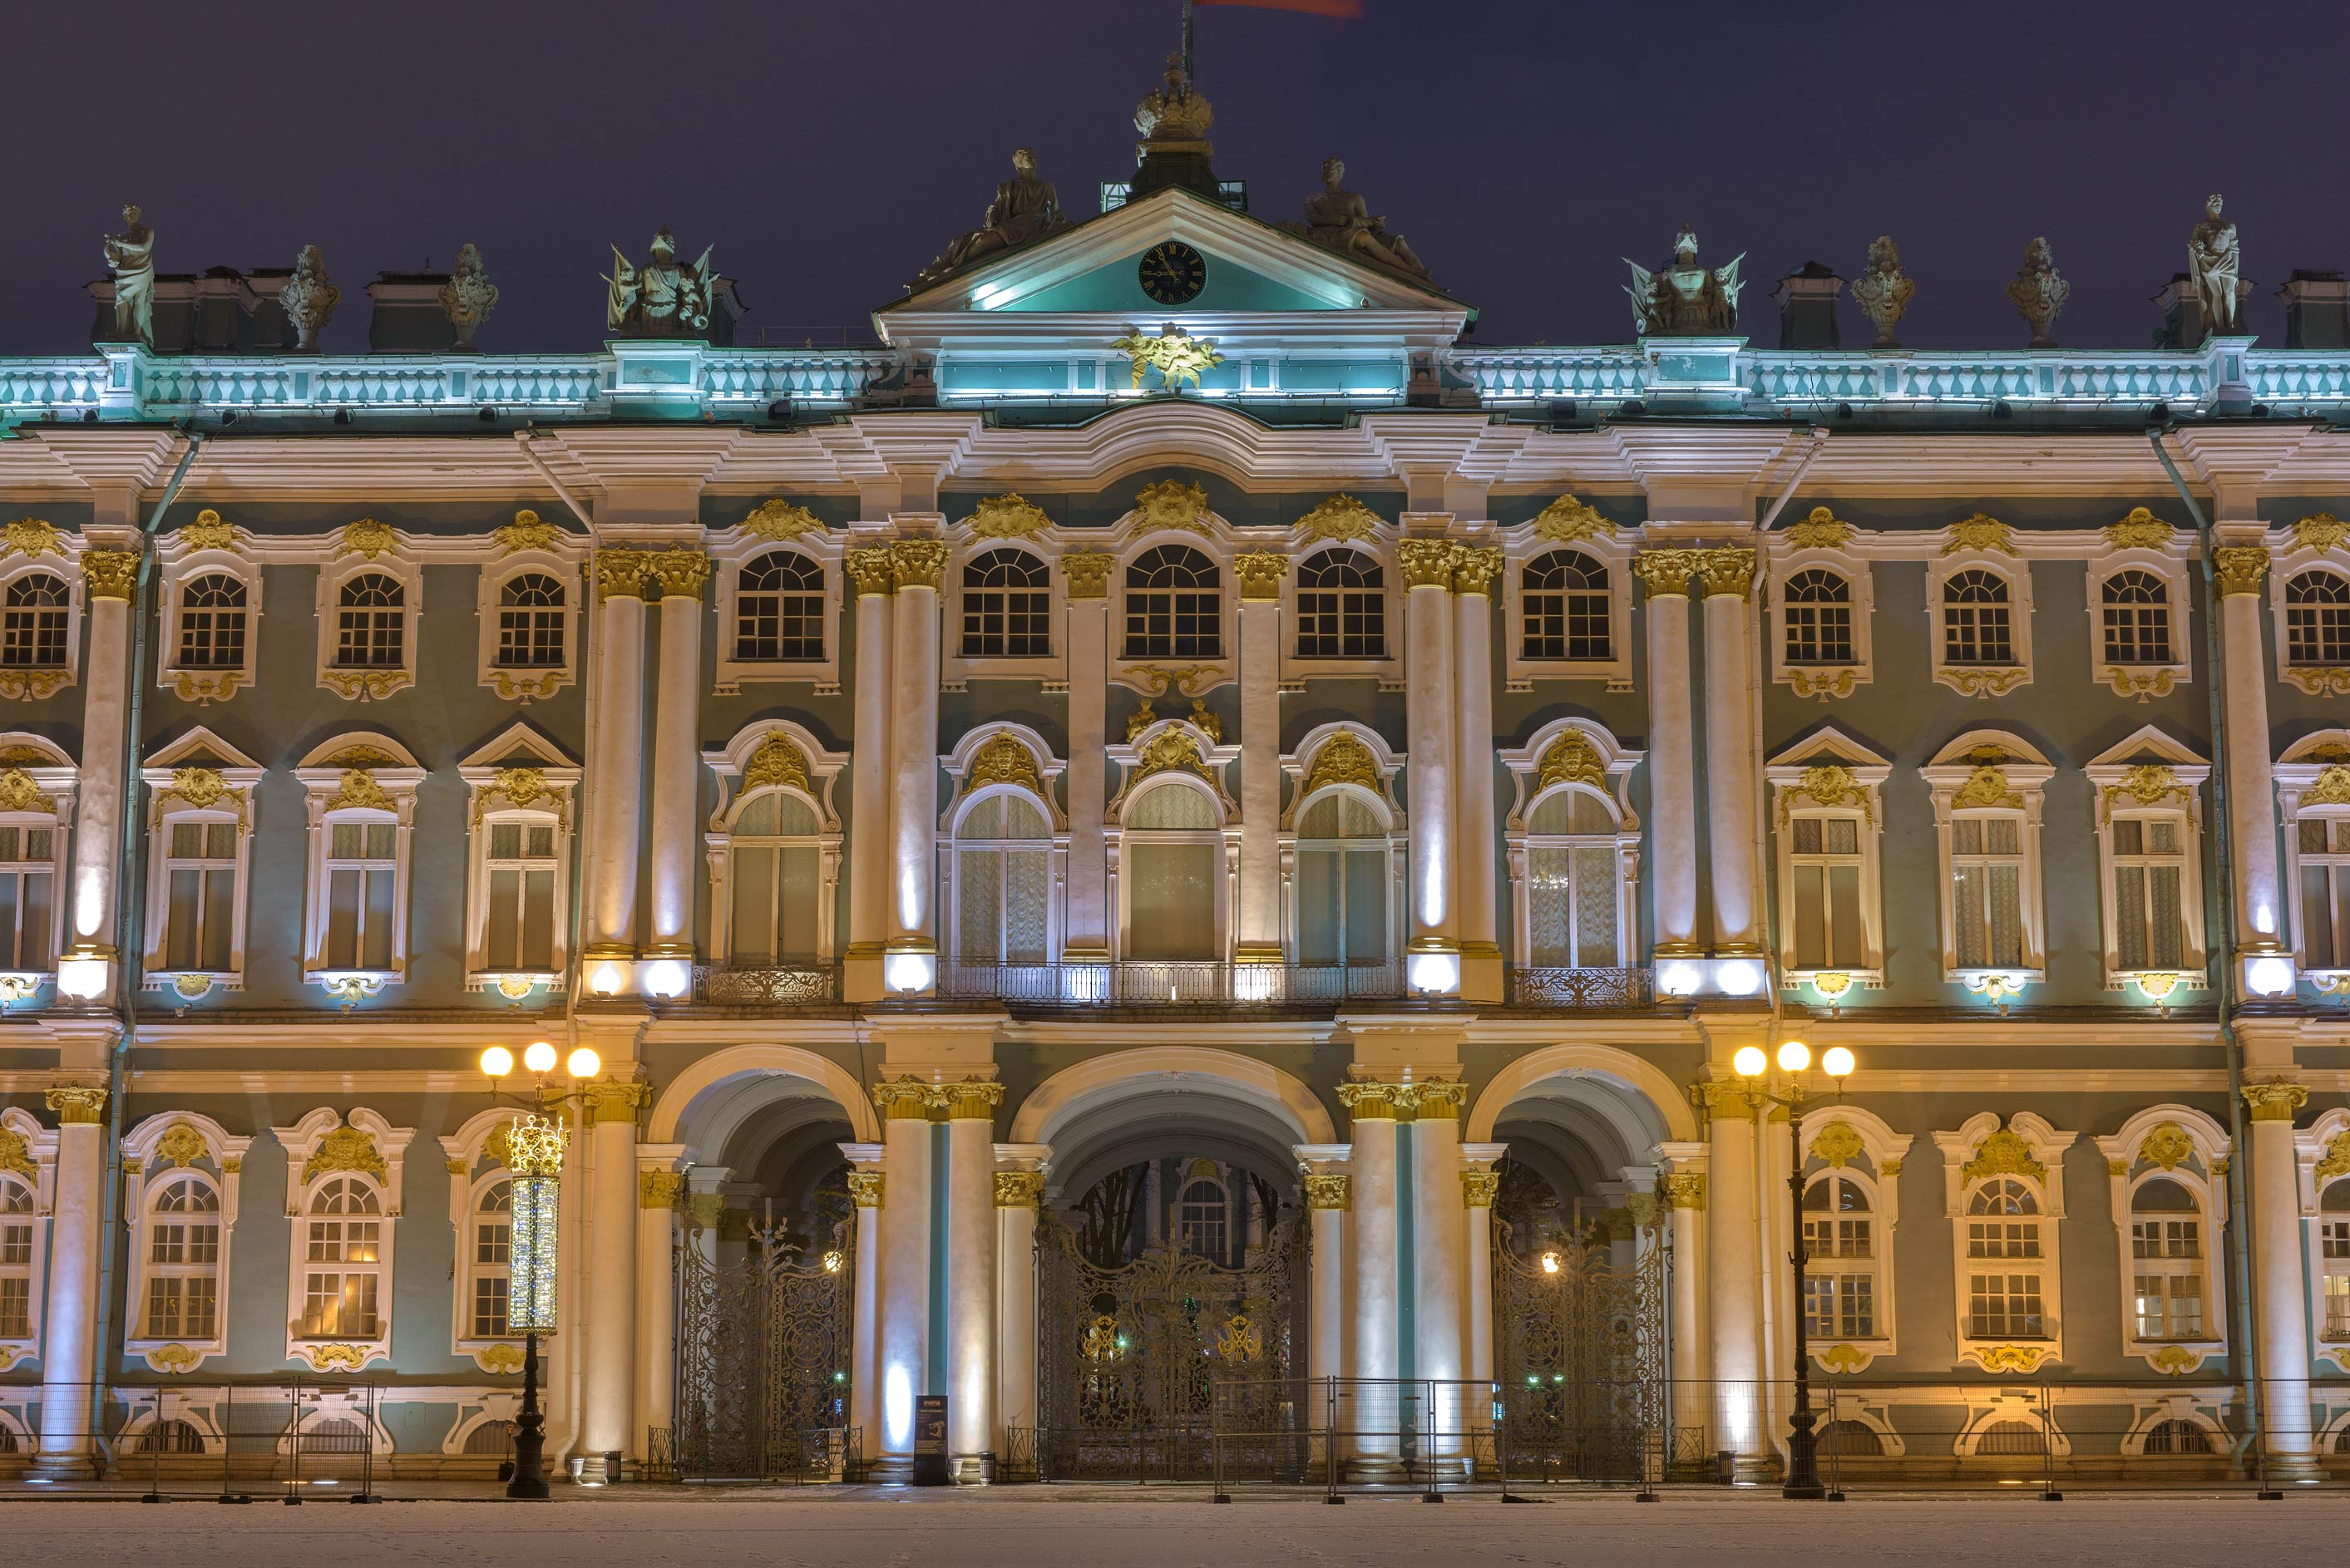 Winter Palace (Hermitage) from Dvortsovaya Square. St.Petersburg, Russia